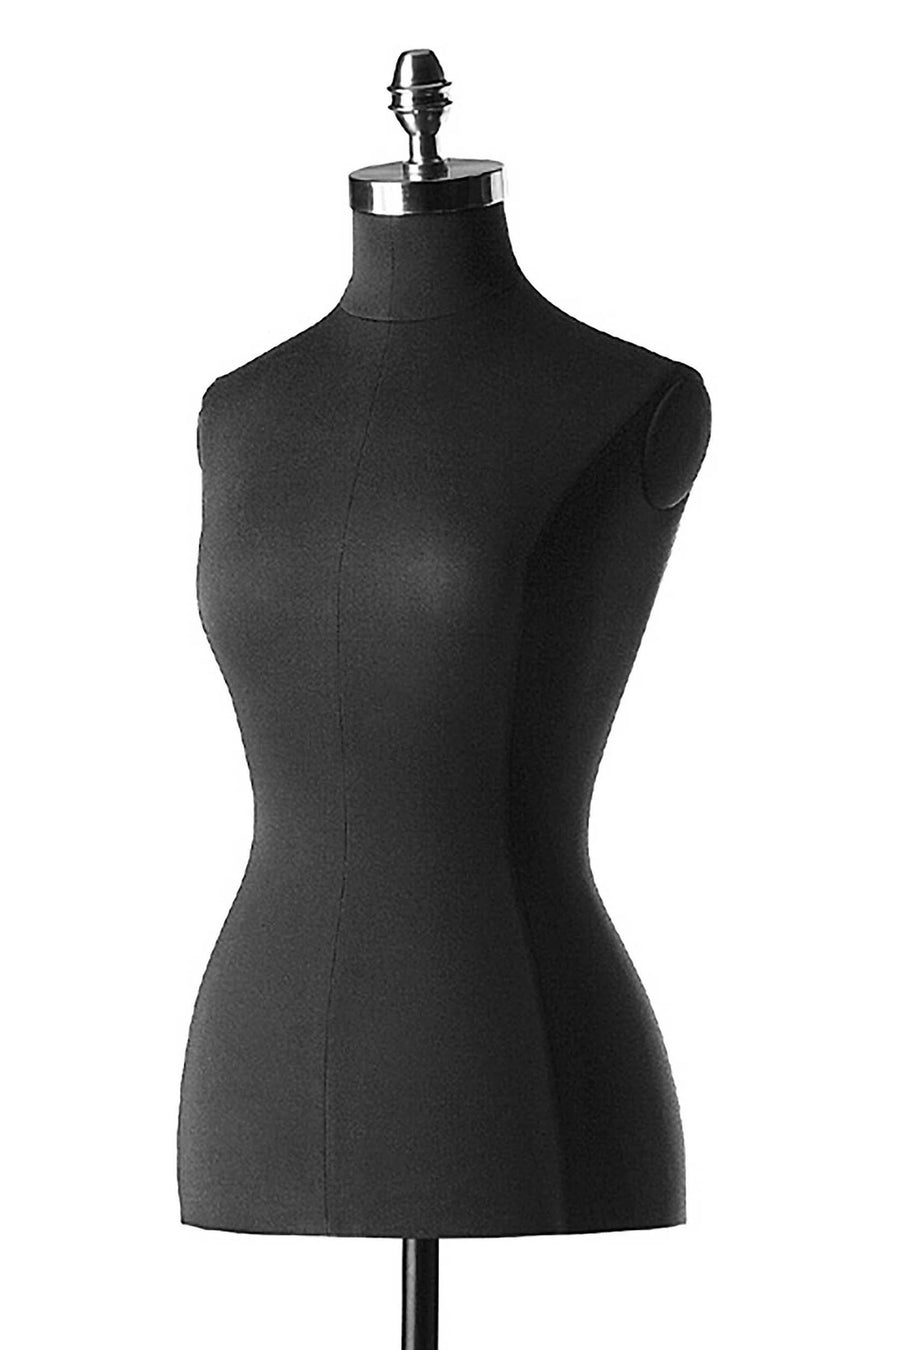 black jersey headless female three quarter tailor bust form mannequin with no arms or legs and a chrome neck cap